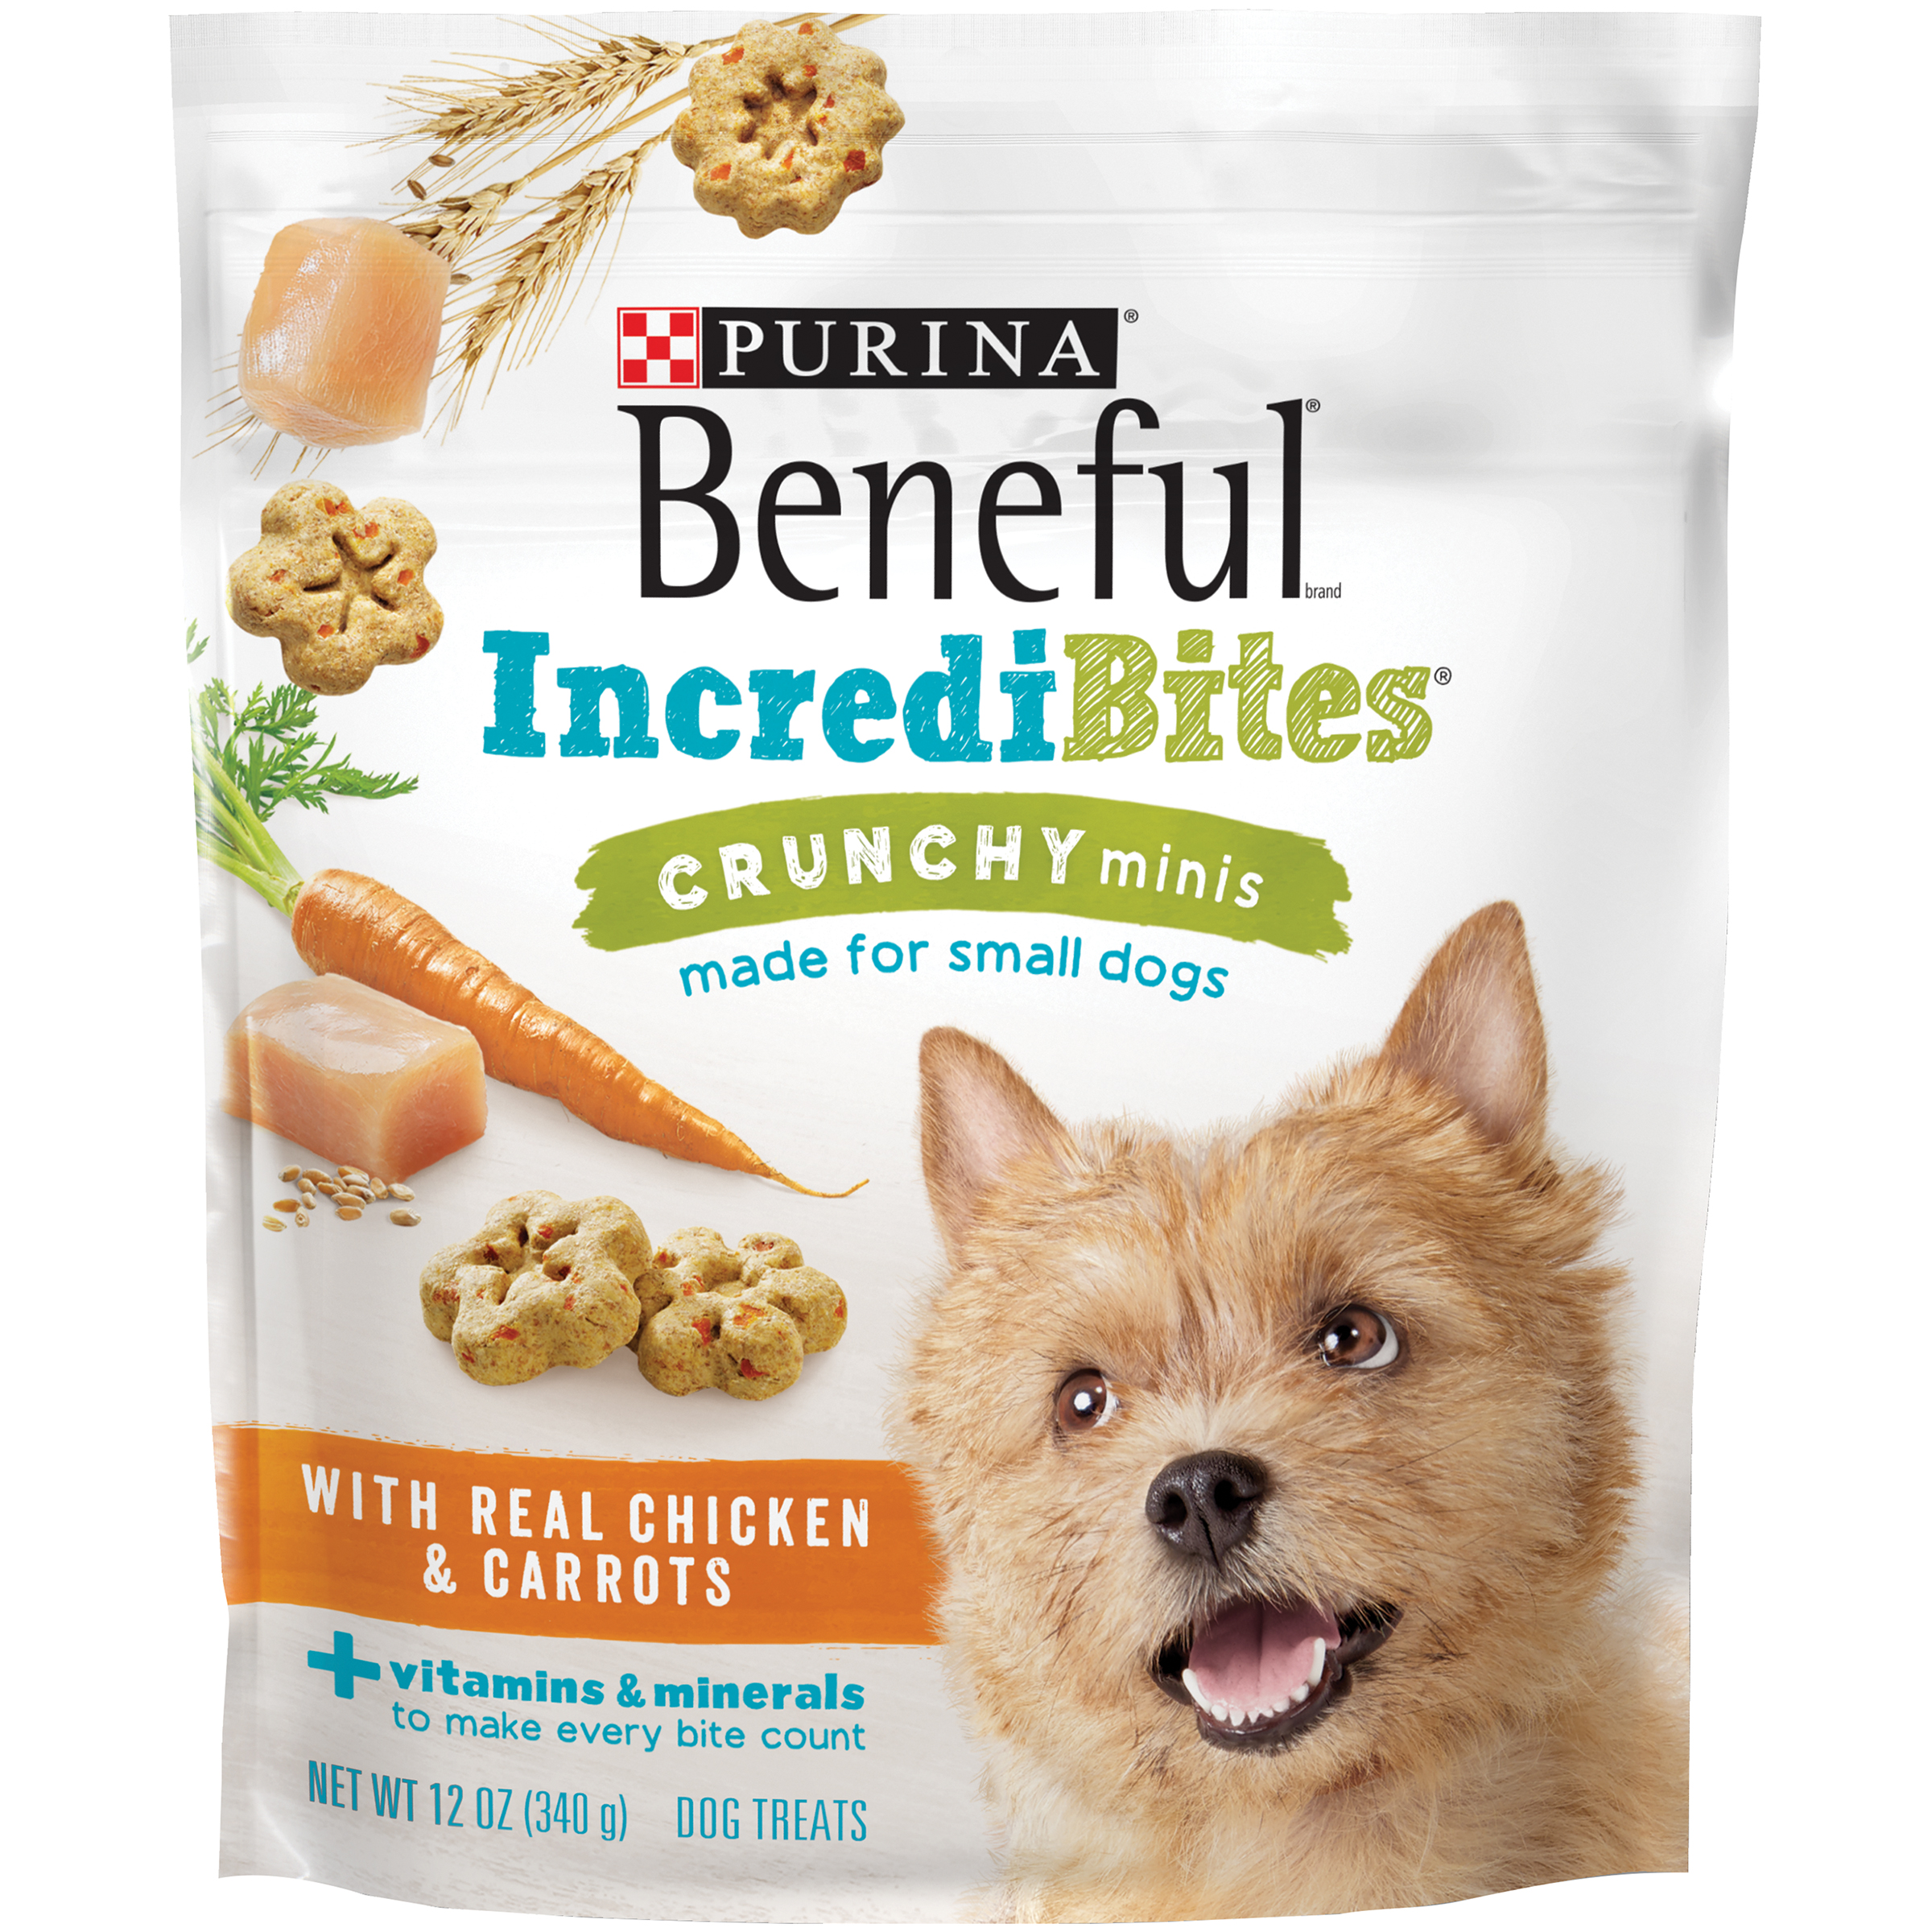 Beneful Purina Incredibites Crunchy Minis With Real Chicken